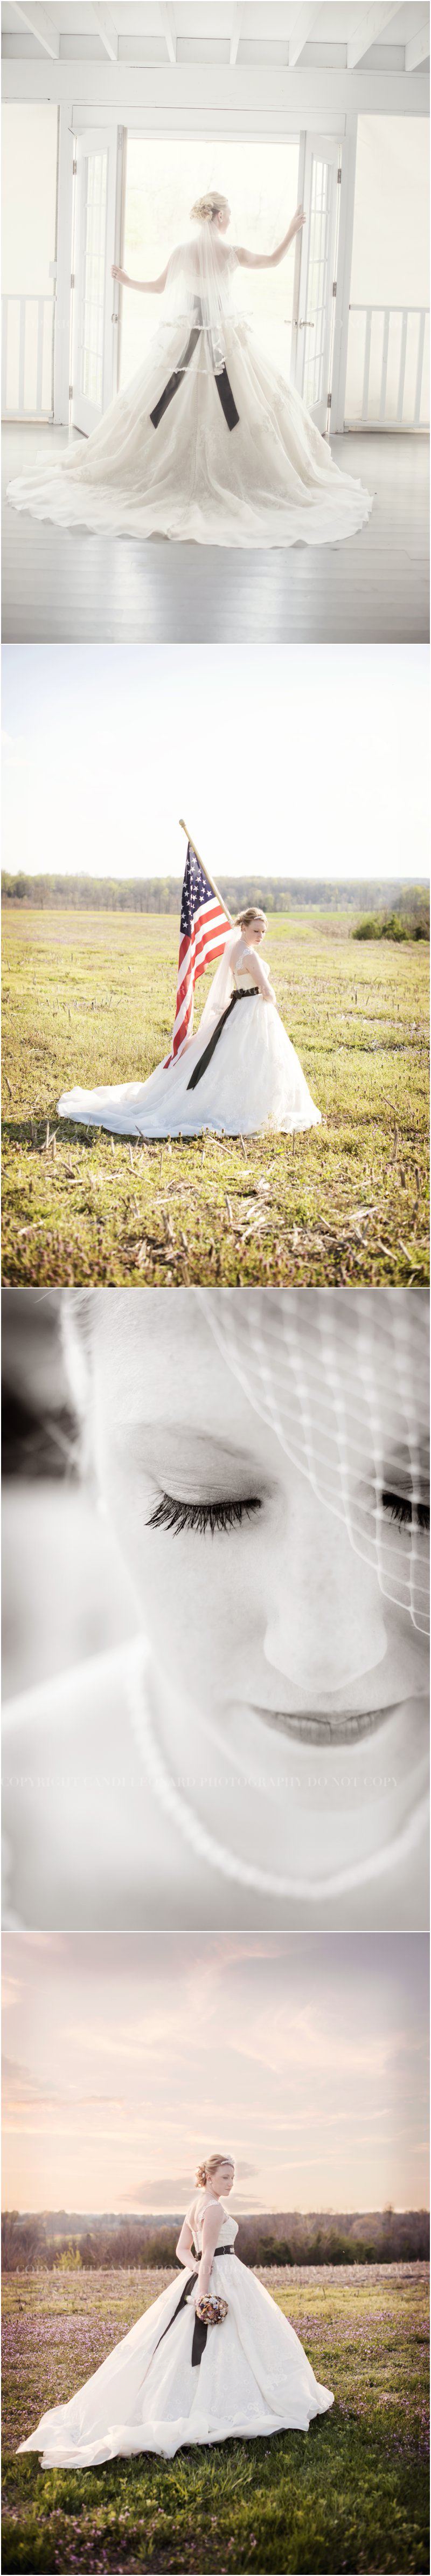 ASHEBORO_NC_wedding_photographer_0947